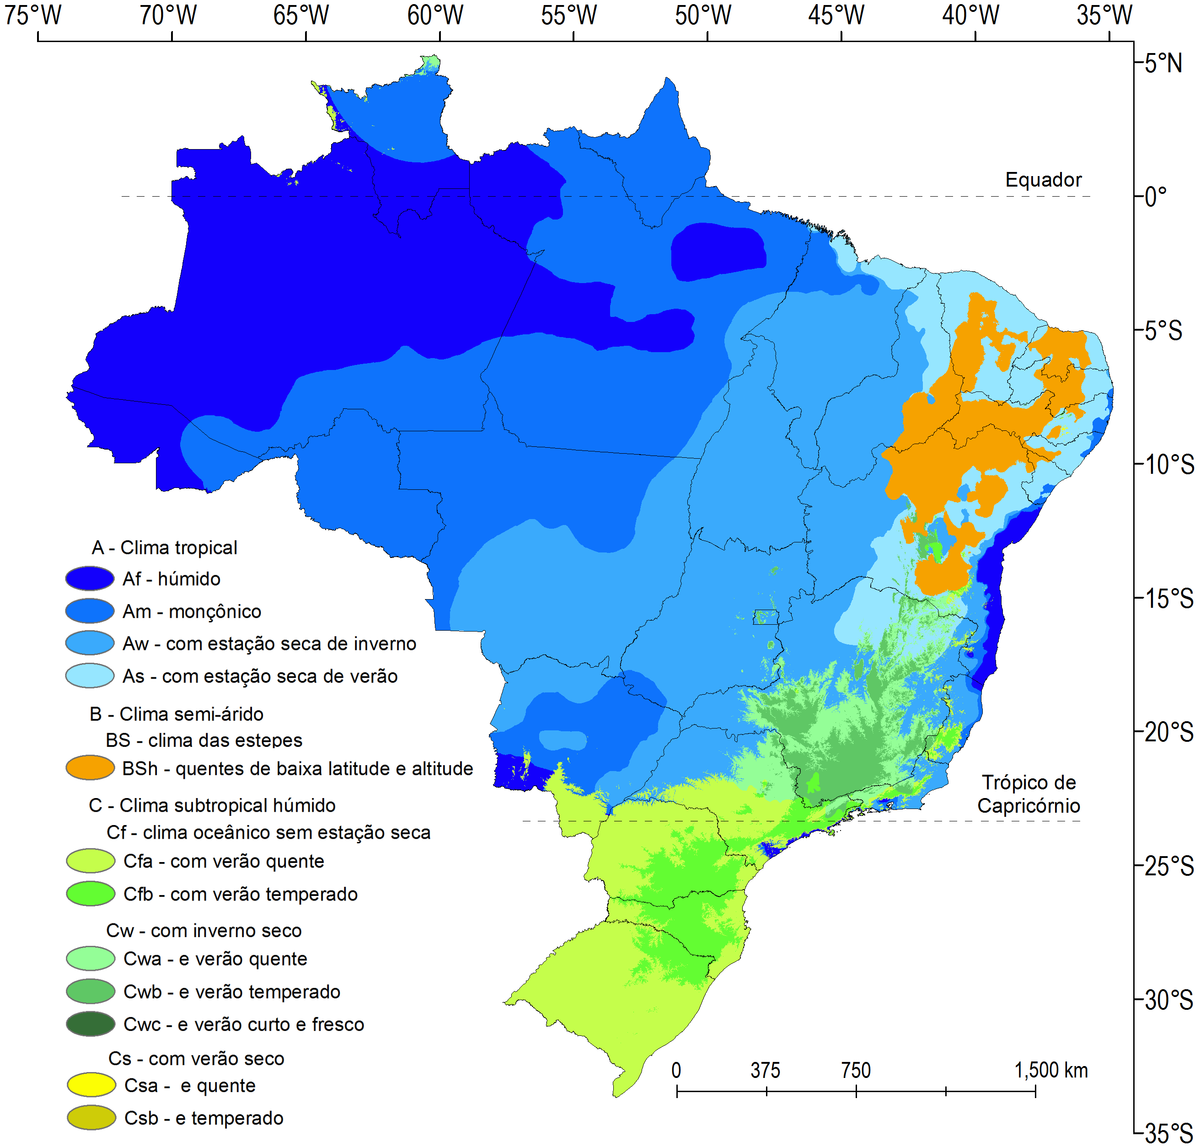 Clima do brasil wikip dia a enciclop dia livre for Wikipedia ingles